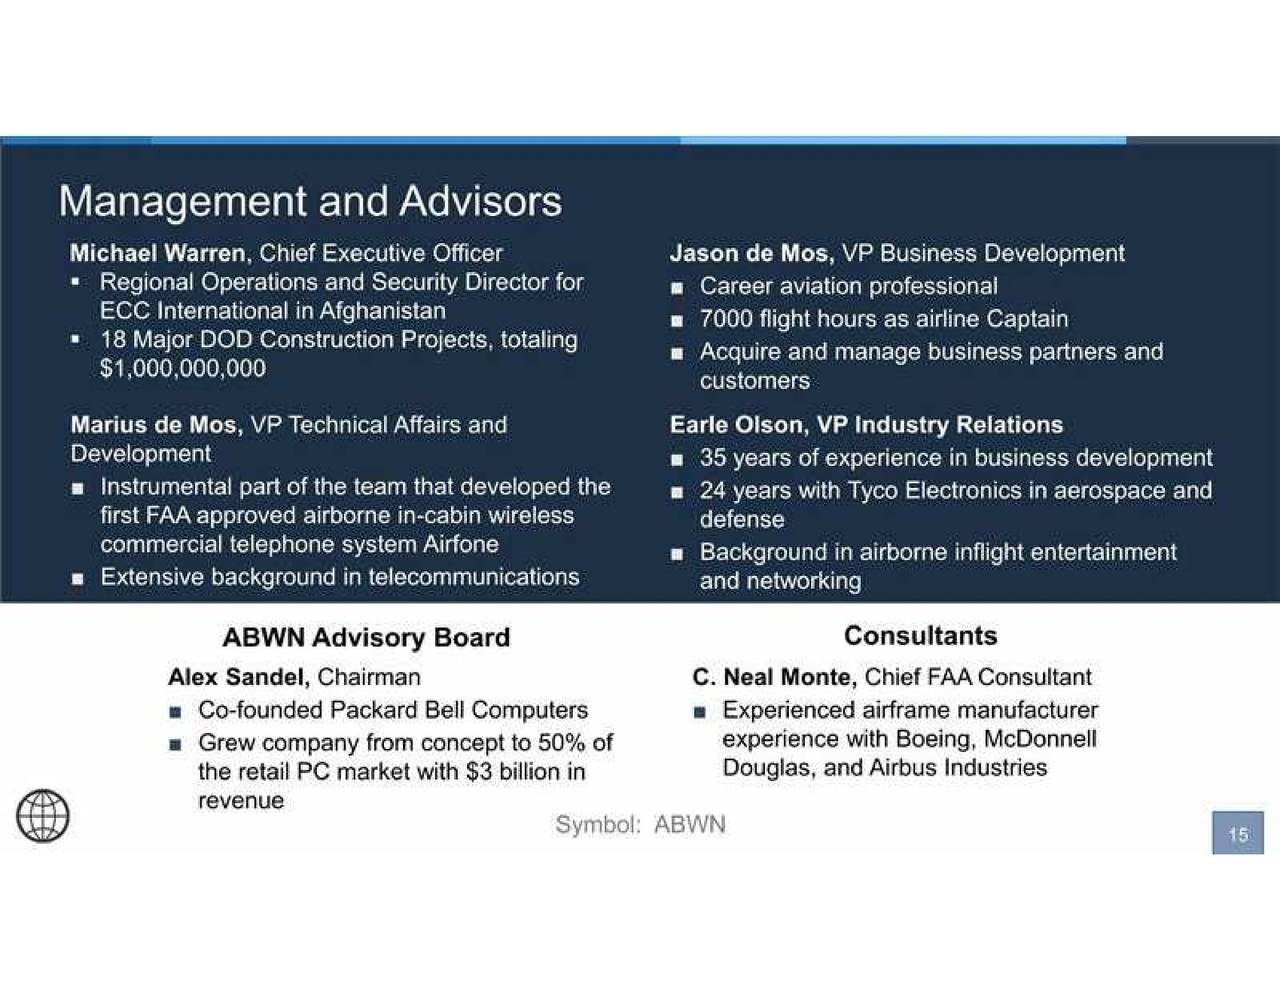 Airborne Wireless Network Stock >> Airborne Wireless Network (ABWN) Presents At 29th Annual ROTH Conference - Airborne Wireless ...